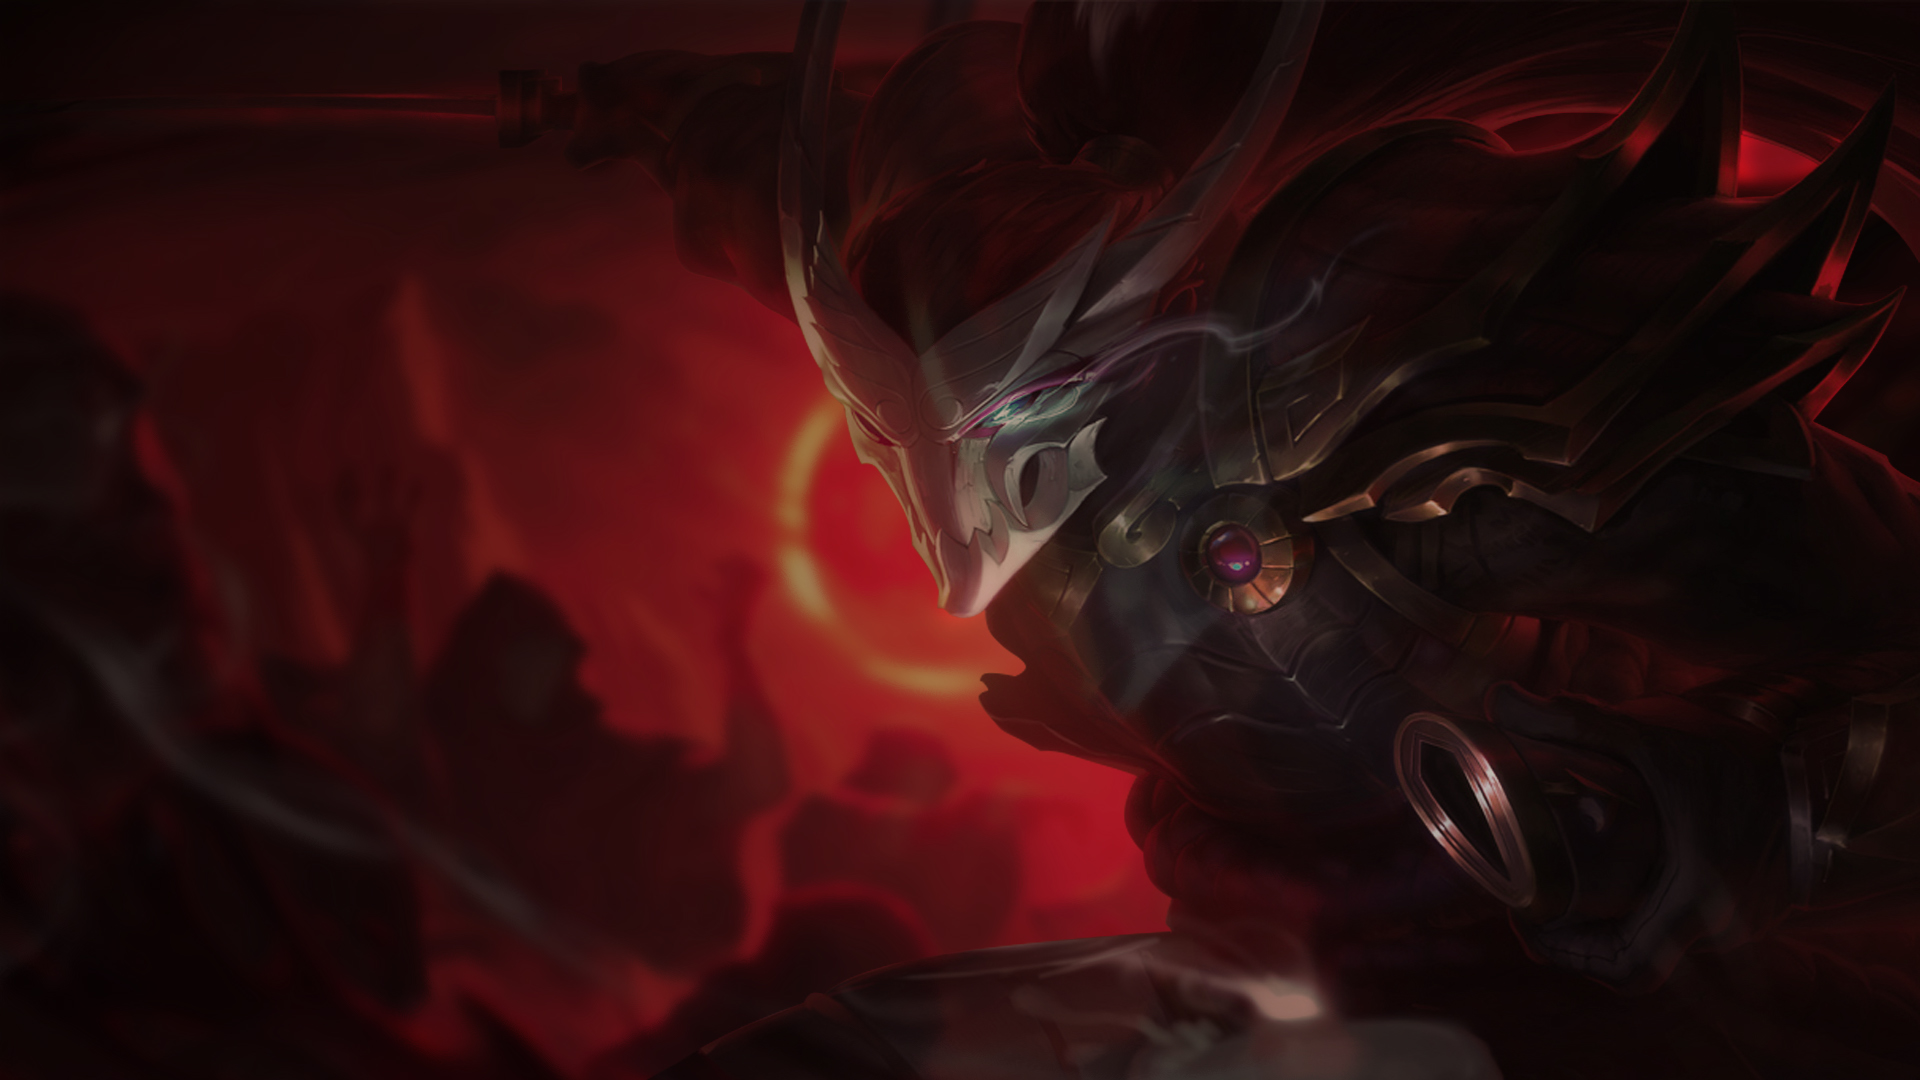 Blood Moon Yasuo Wallpaper Blood Moon Yasuo Fanart 1920x1080 Wallpaper Teahub Io